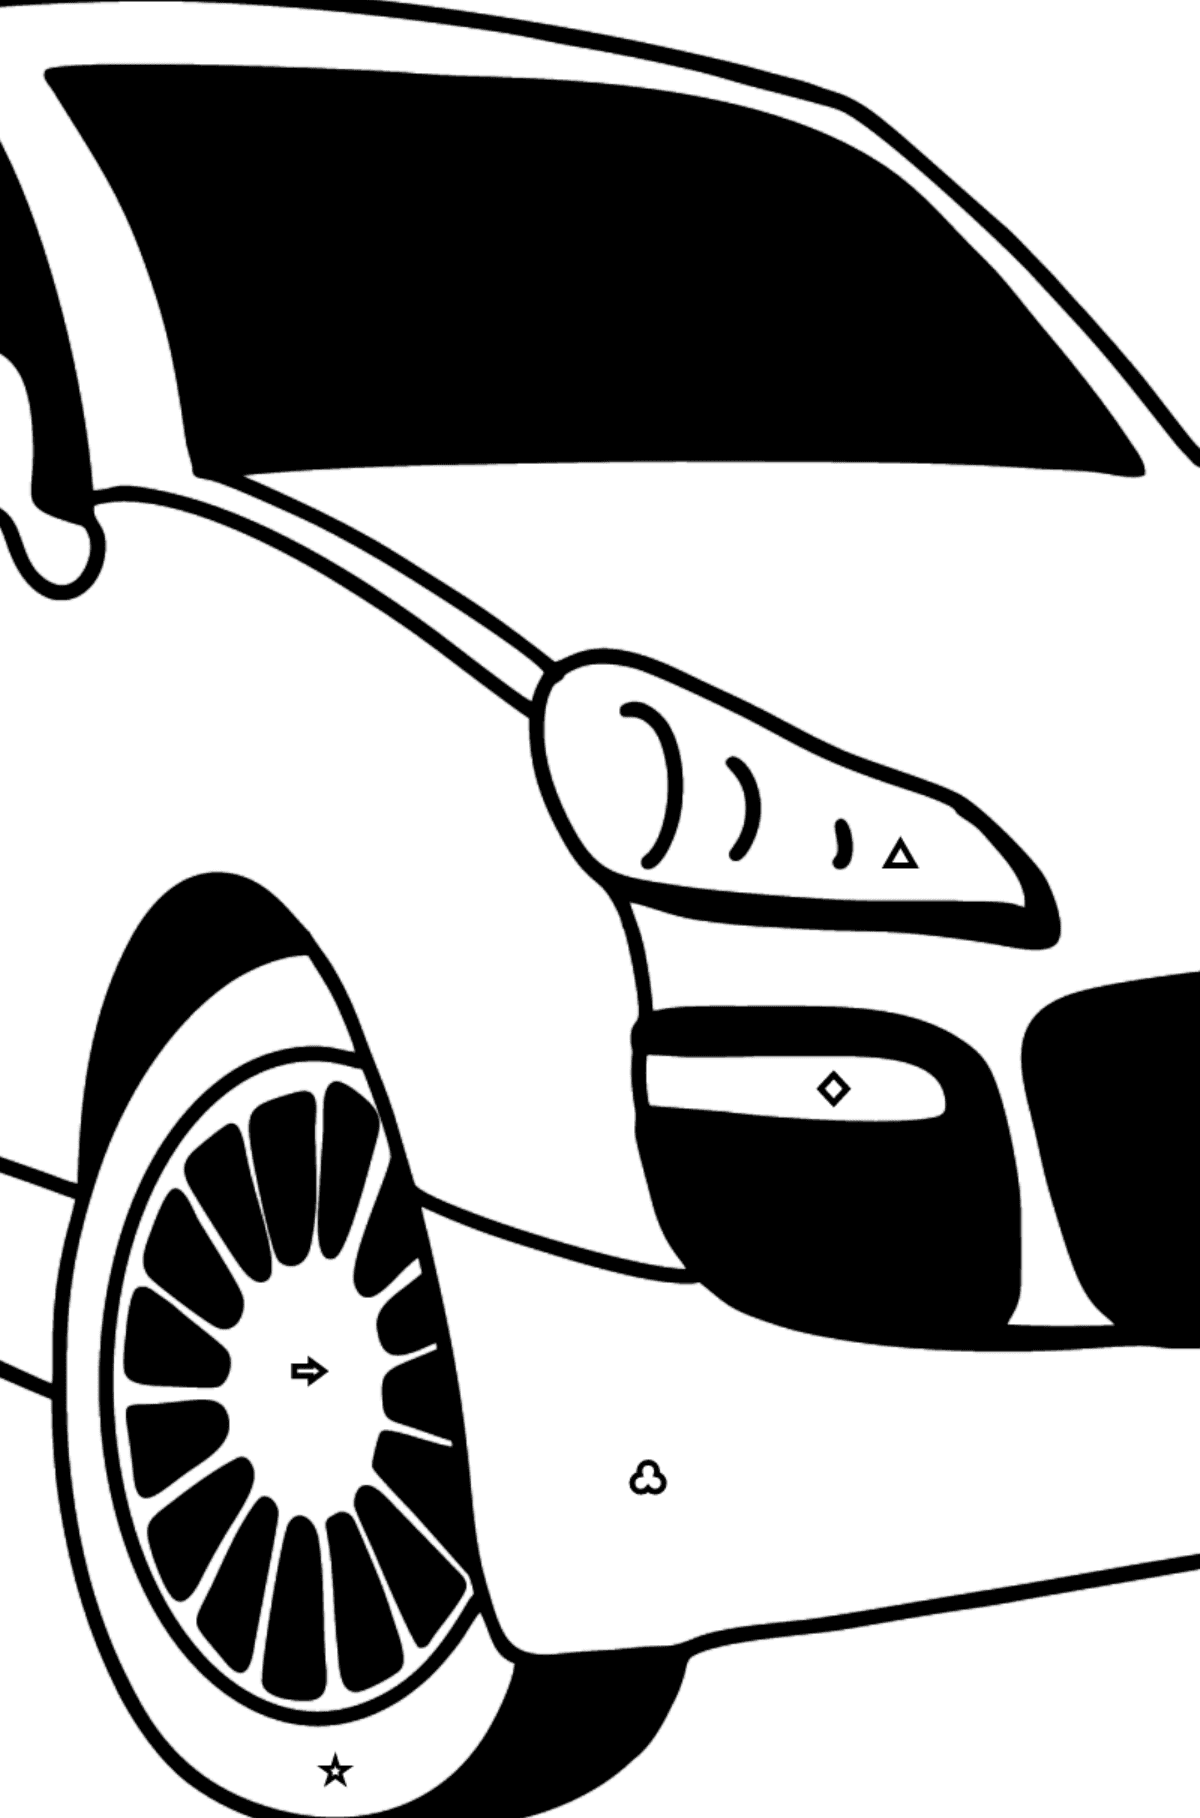 Porsche Cayenne Crossover coloring page - Coloring by Geometric Shapes for Kids